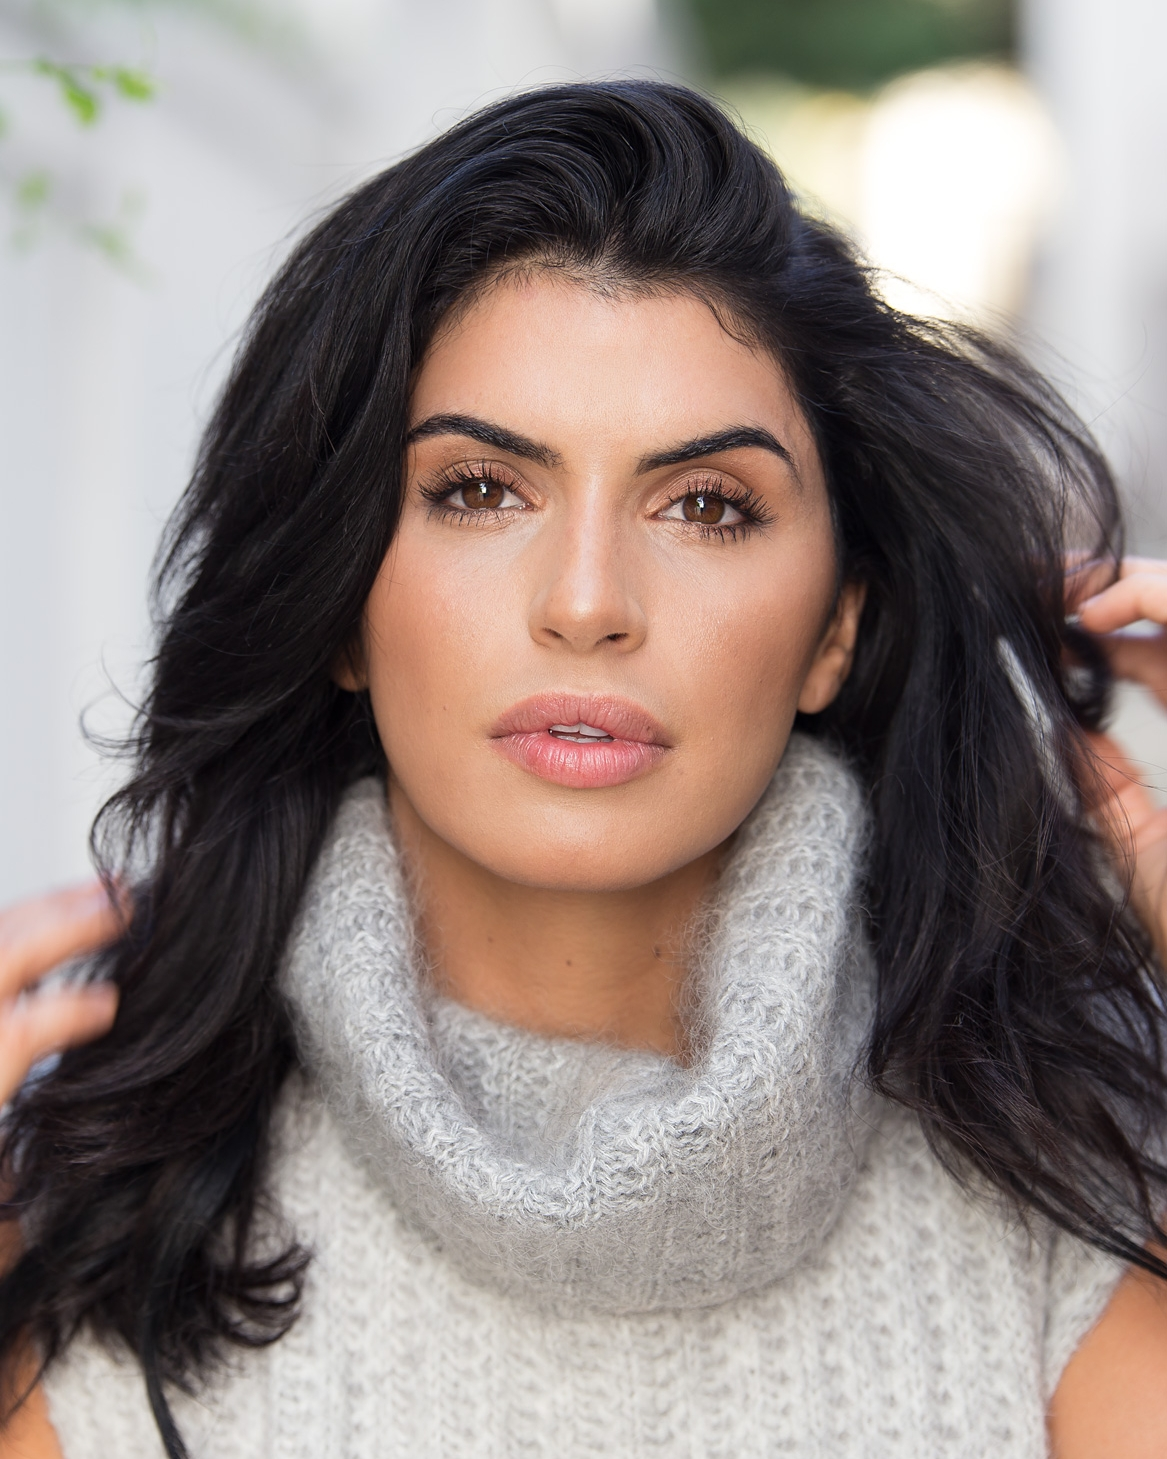 Beautiful, brunette model headshot, brown eyes and white grey sweater, photographed in El Segundo near Los Angeles, CA.